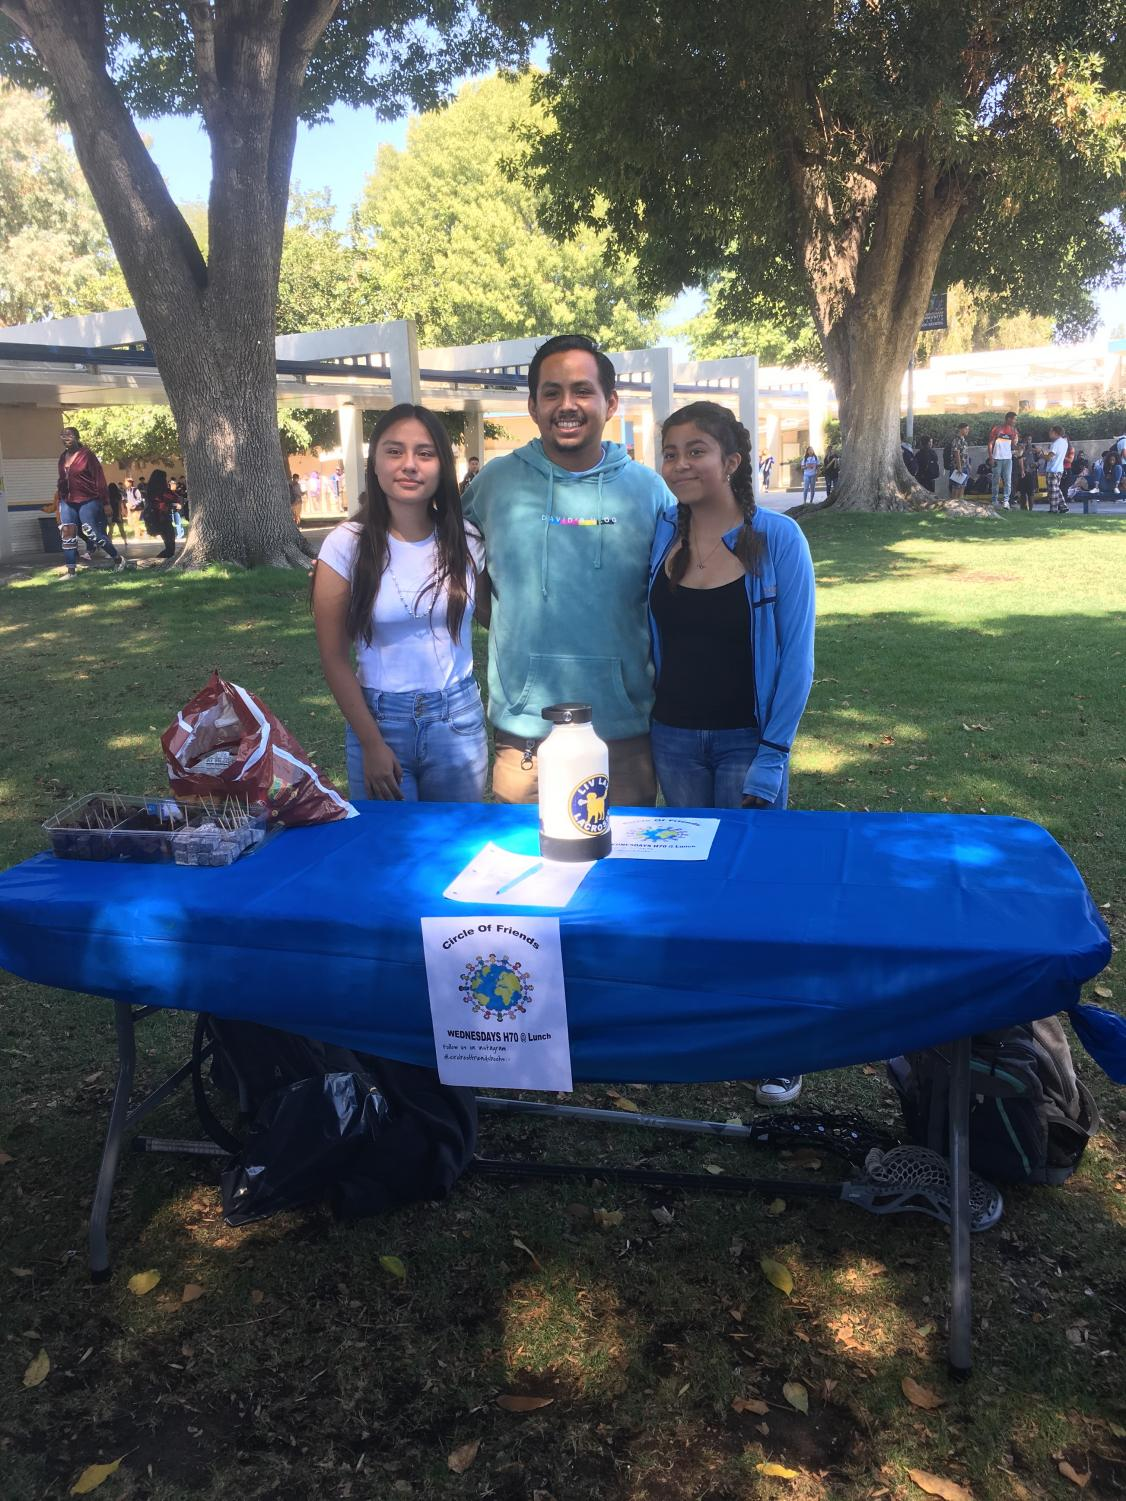 Rebecca Castillo, Eric Marcos, and Divialin Lucero representing their club Cirlce of Friends.